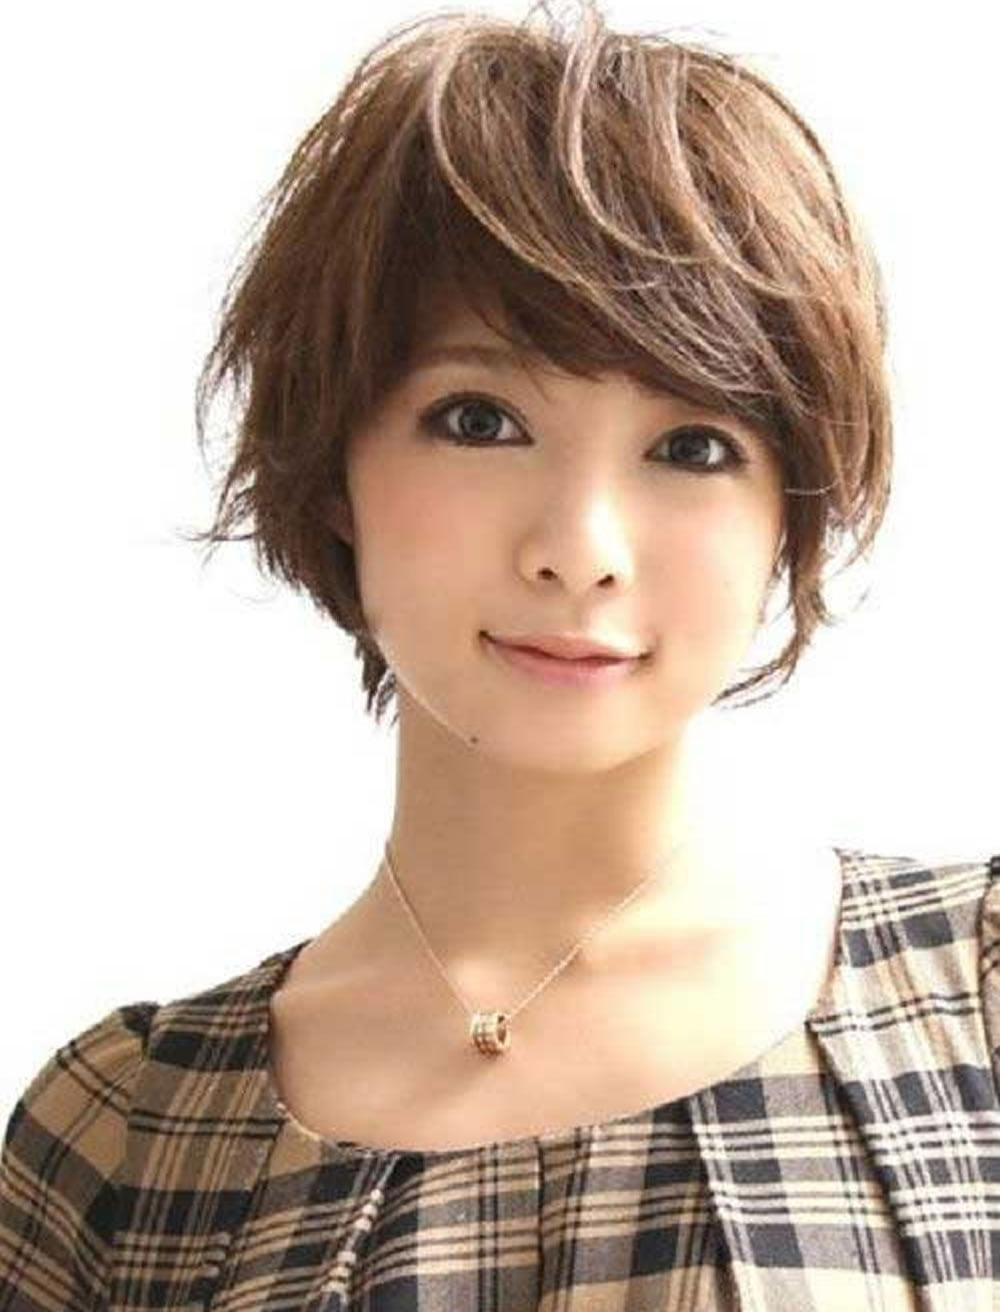 50 glorious short hairstyles for asian women for summer days 2018